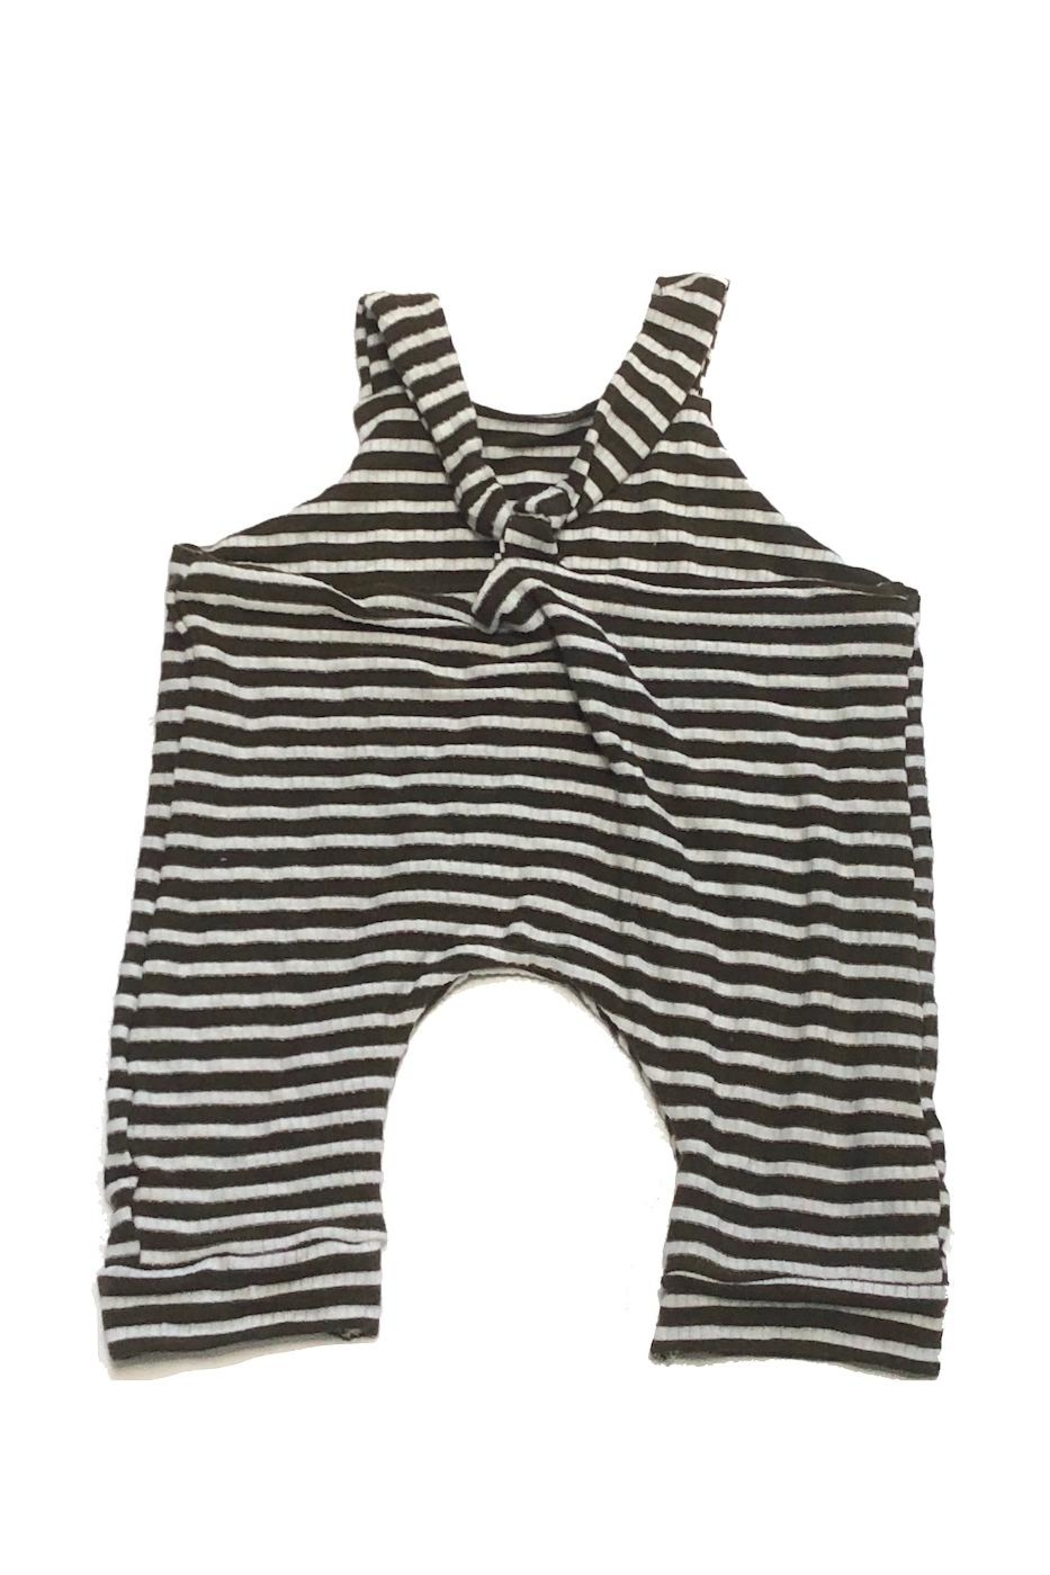 Hankie Babies Striped Jersey Romper - Front Full Image